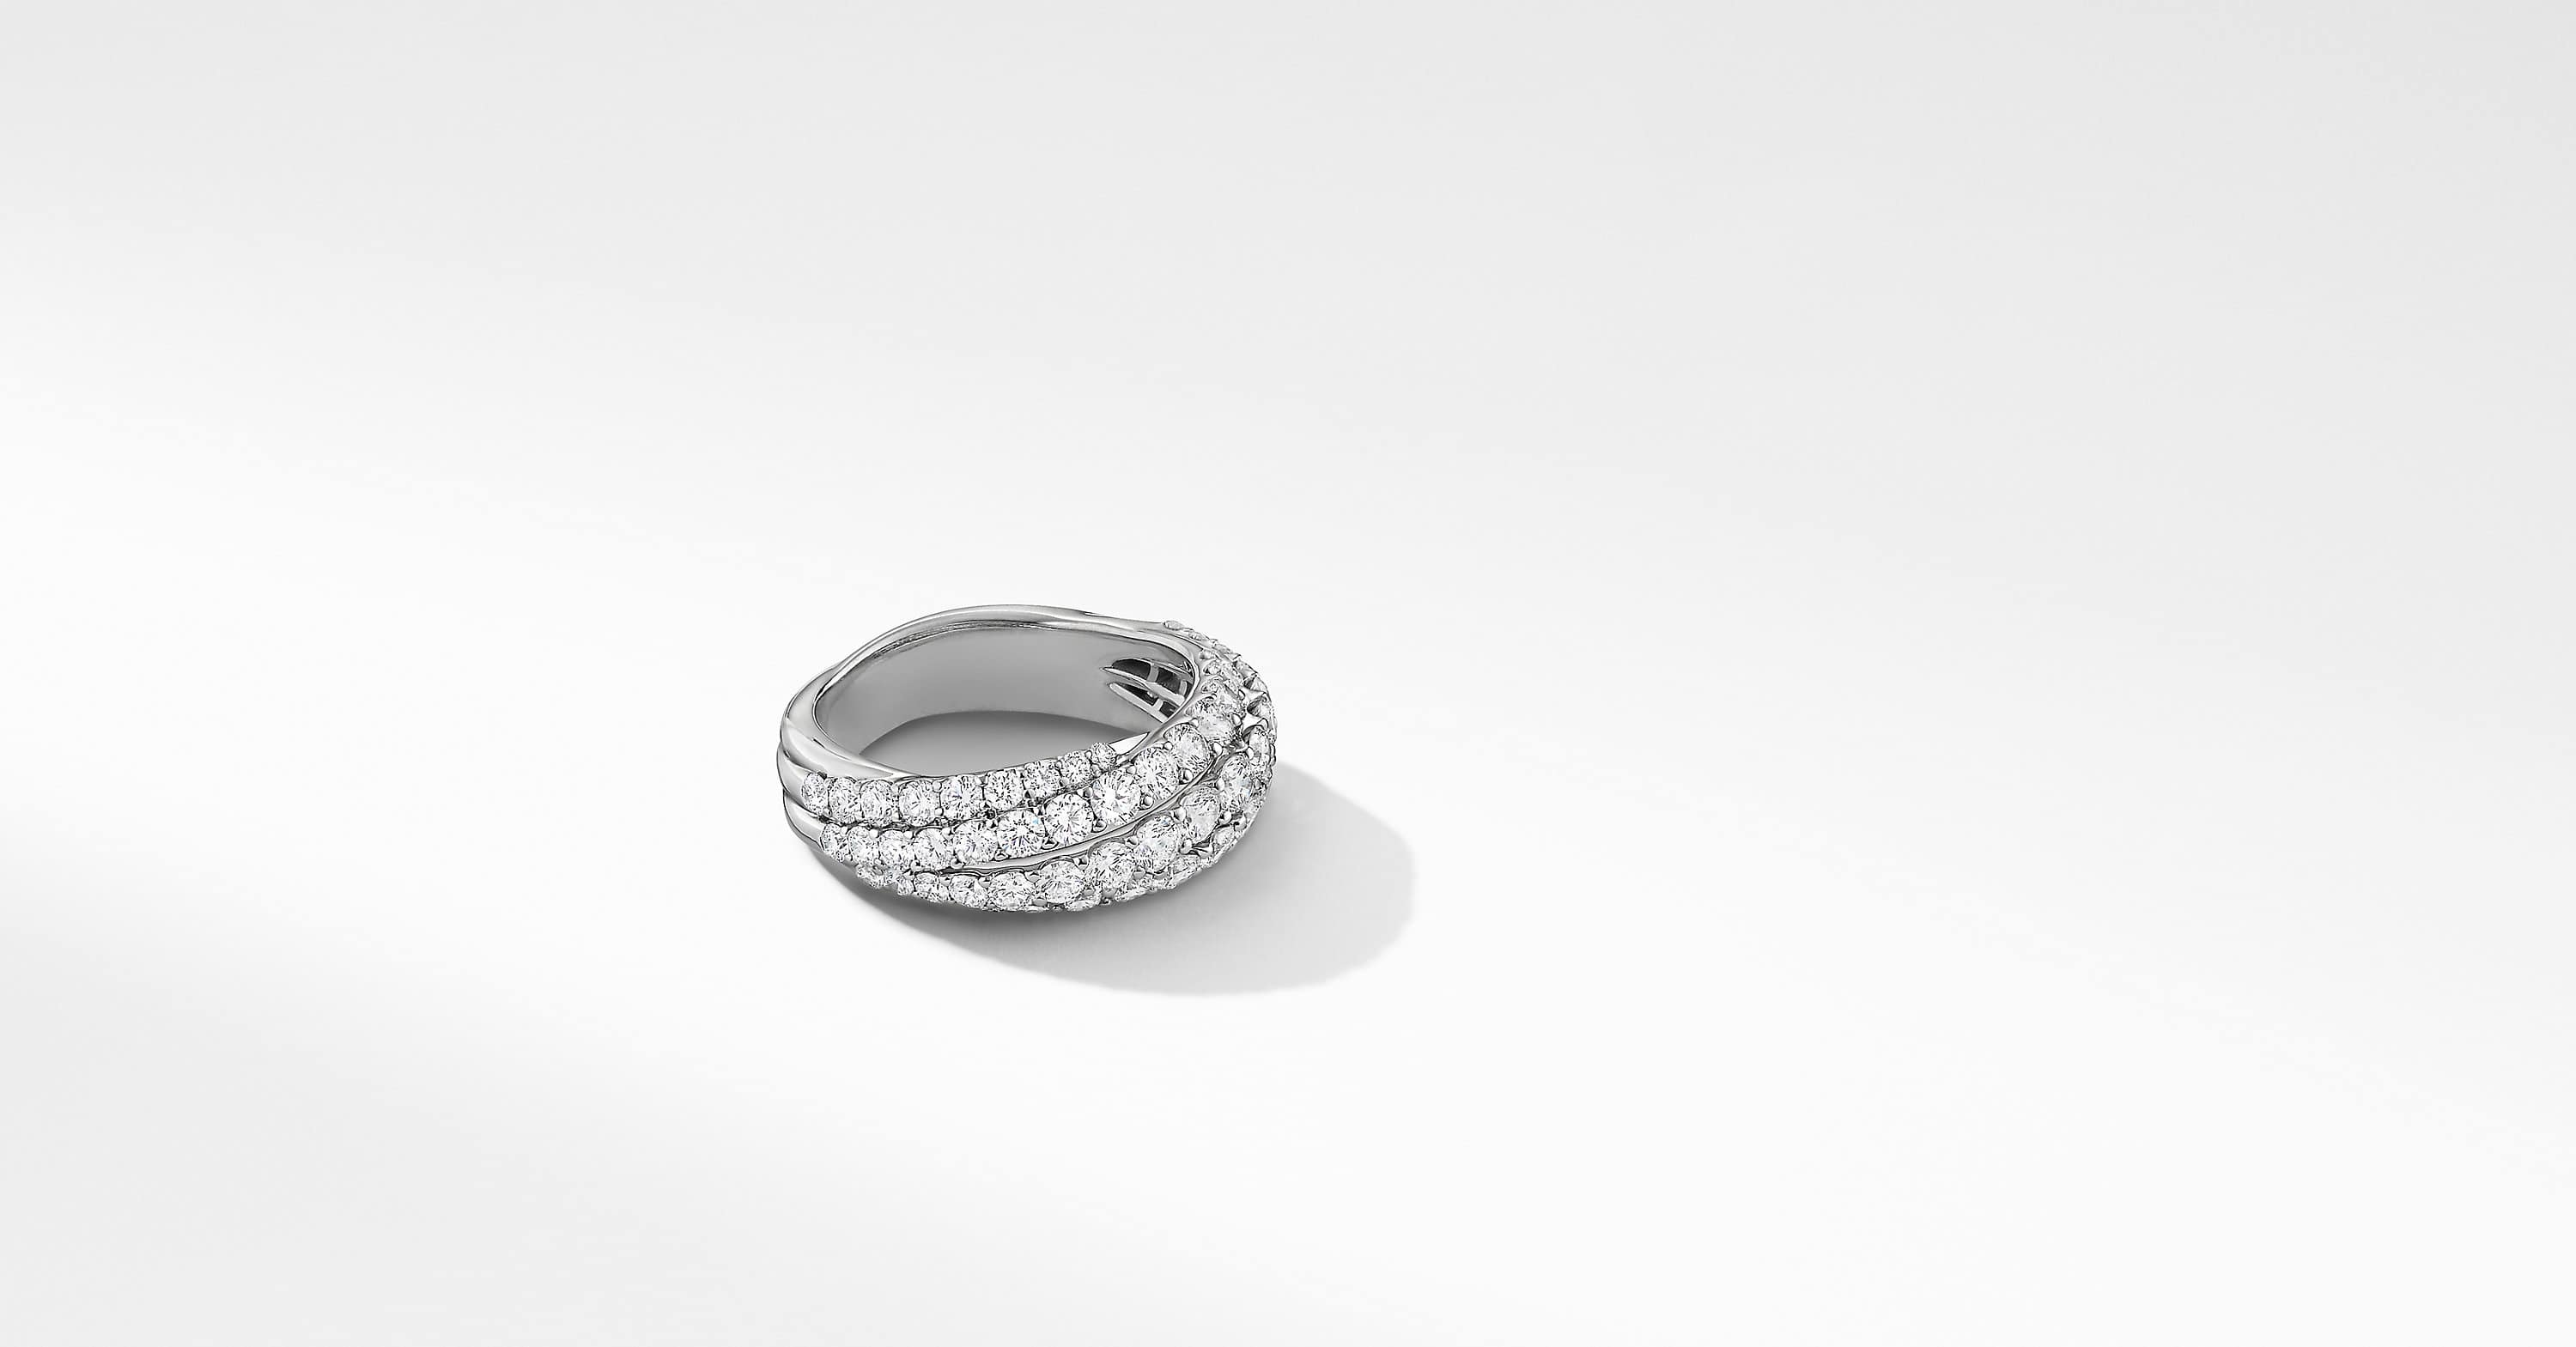 Floating Diamonds Small Ring in 18K White Gold